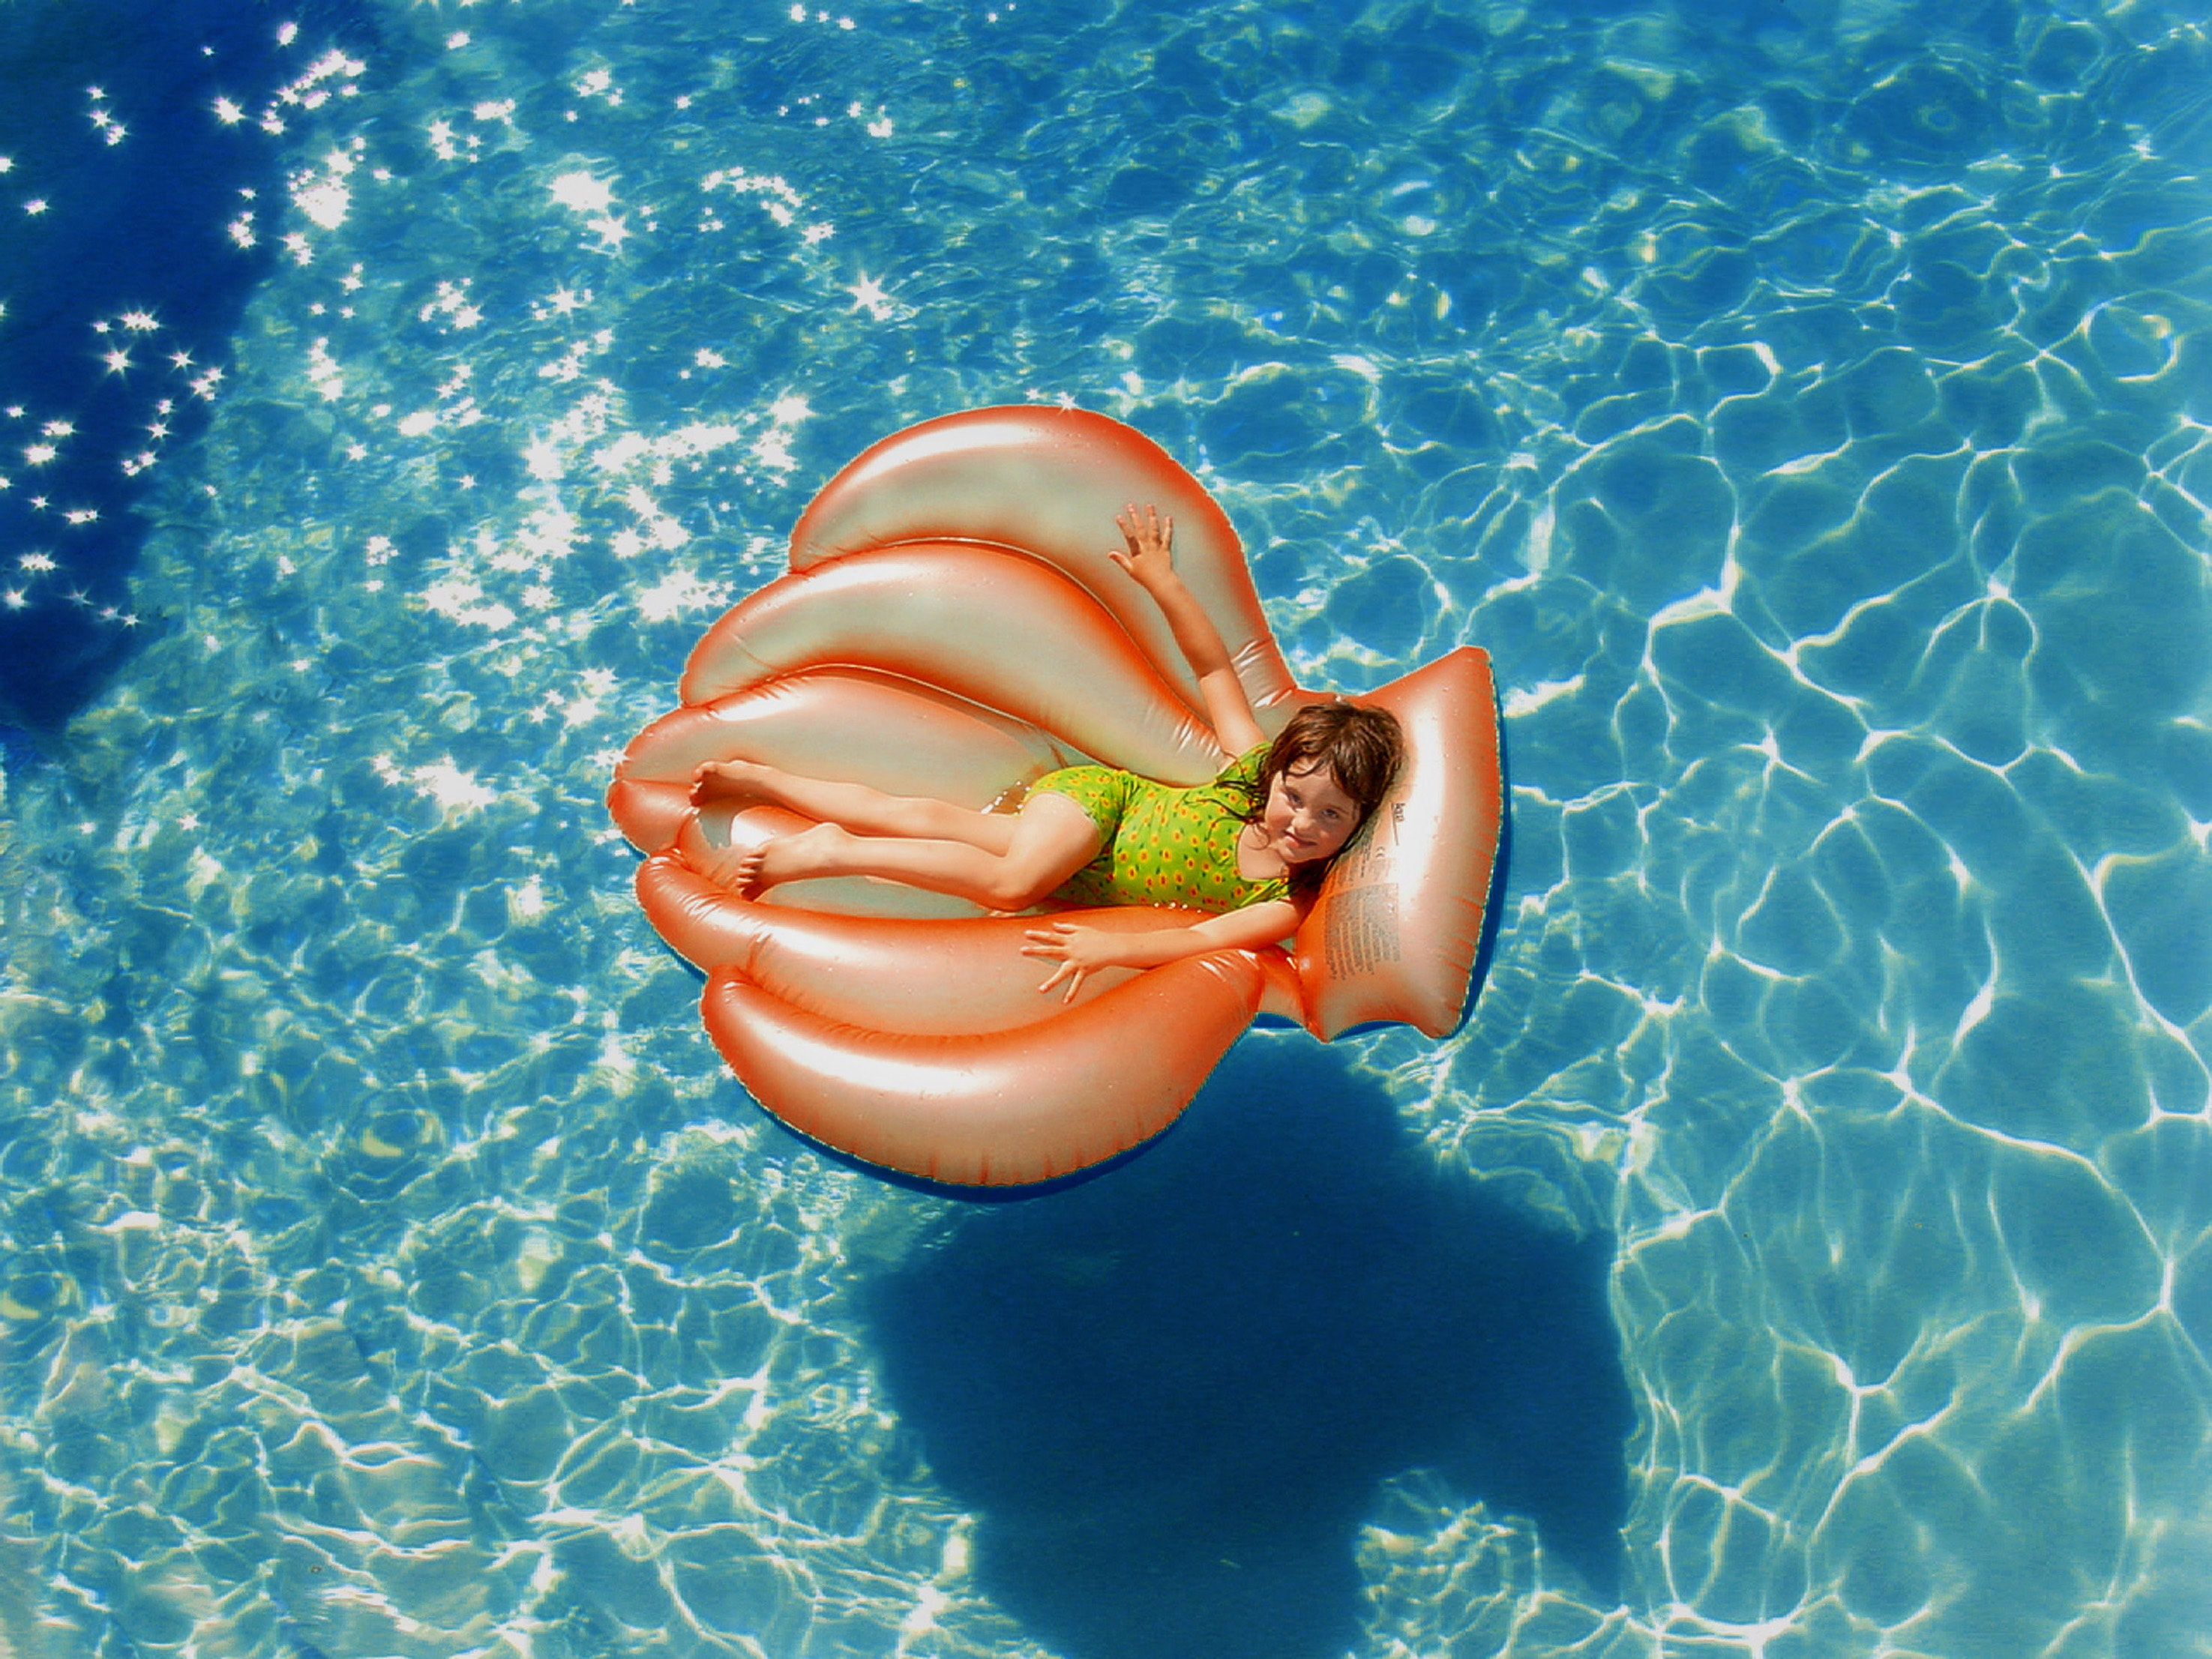 Girl wearing green wet suit riding inflatable orange life buoy on top of body of water photo